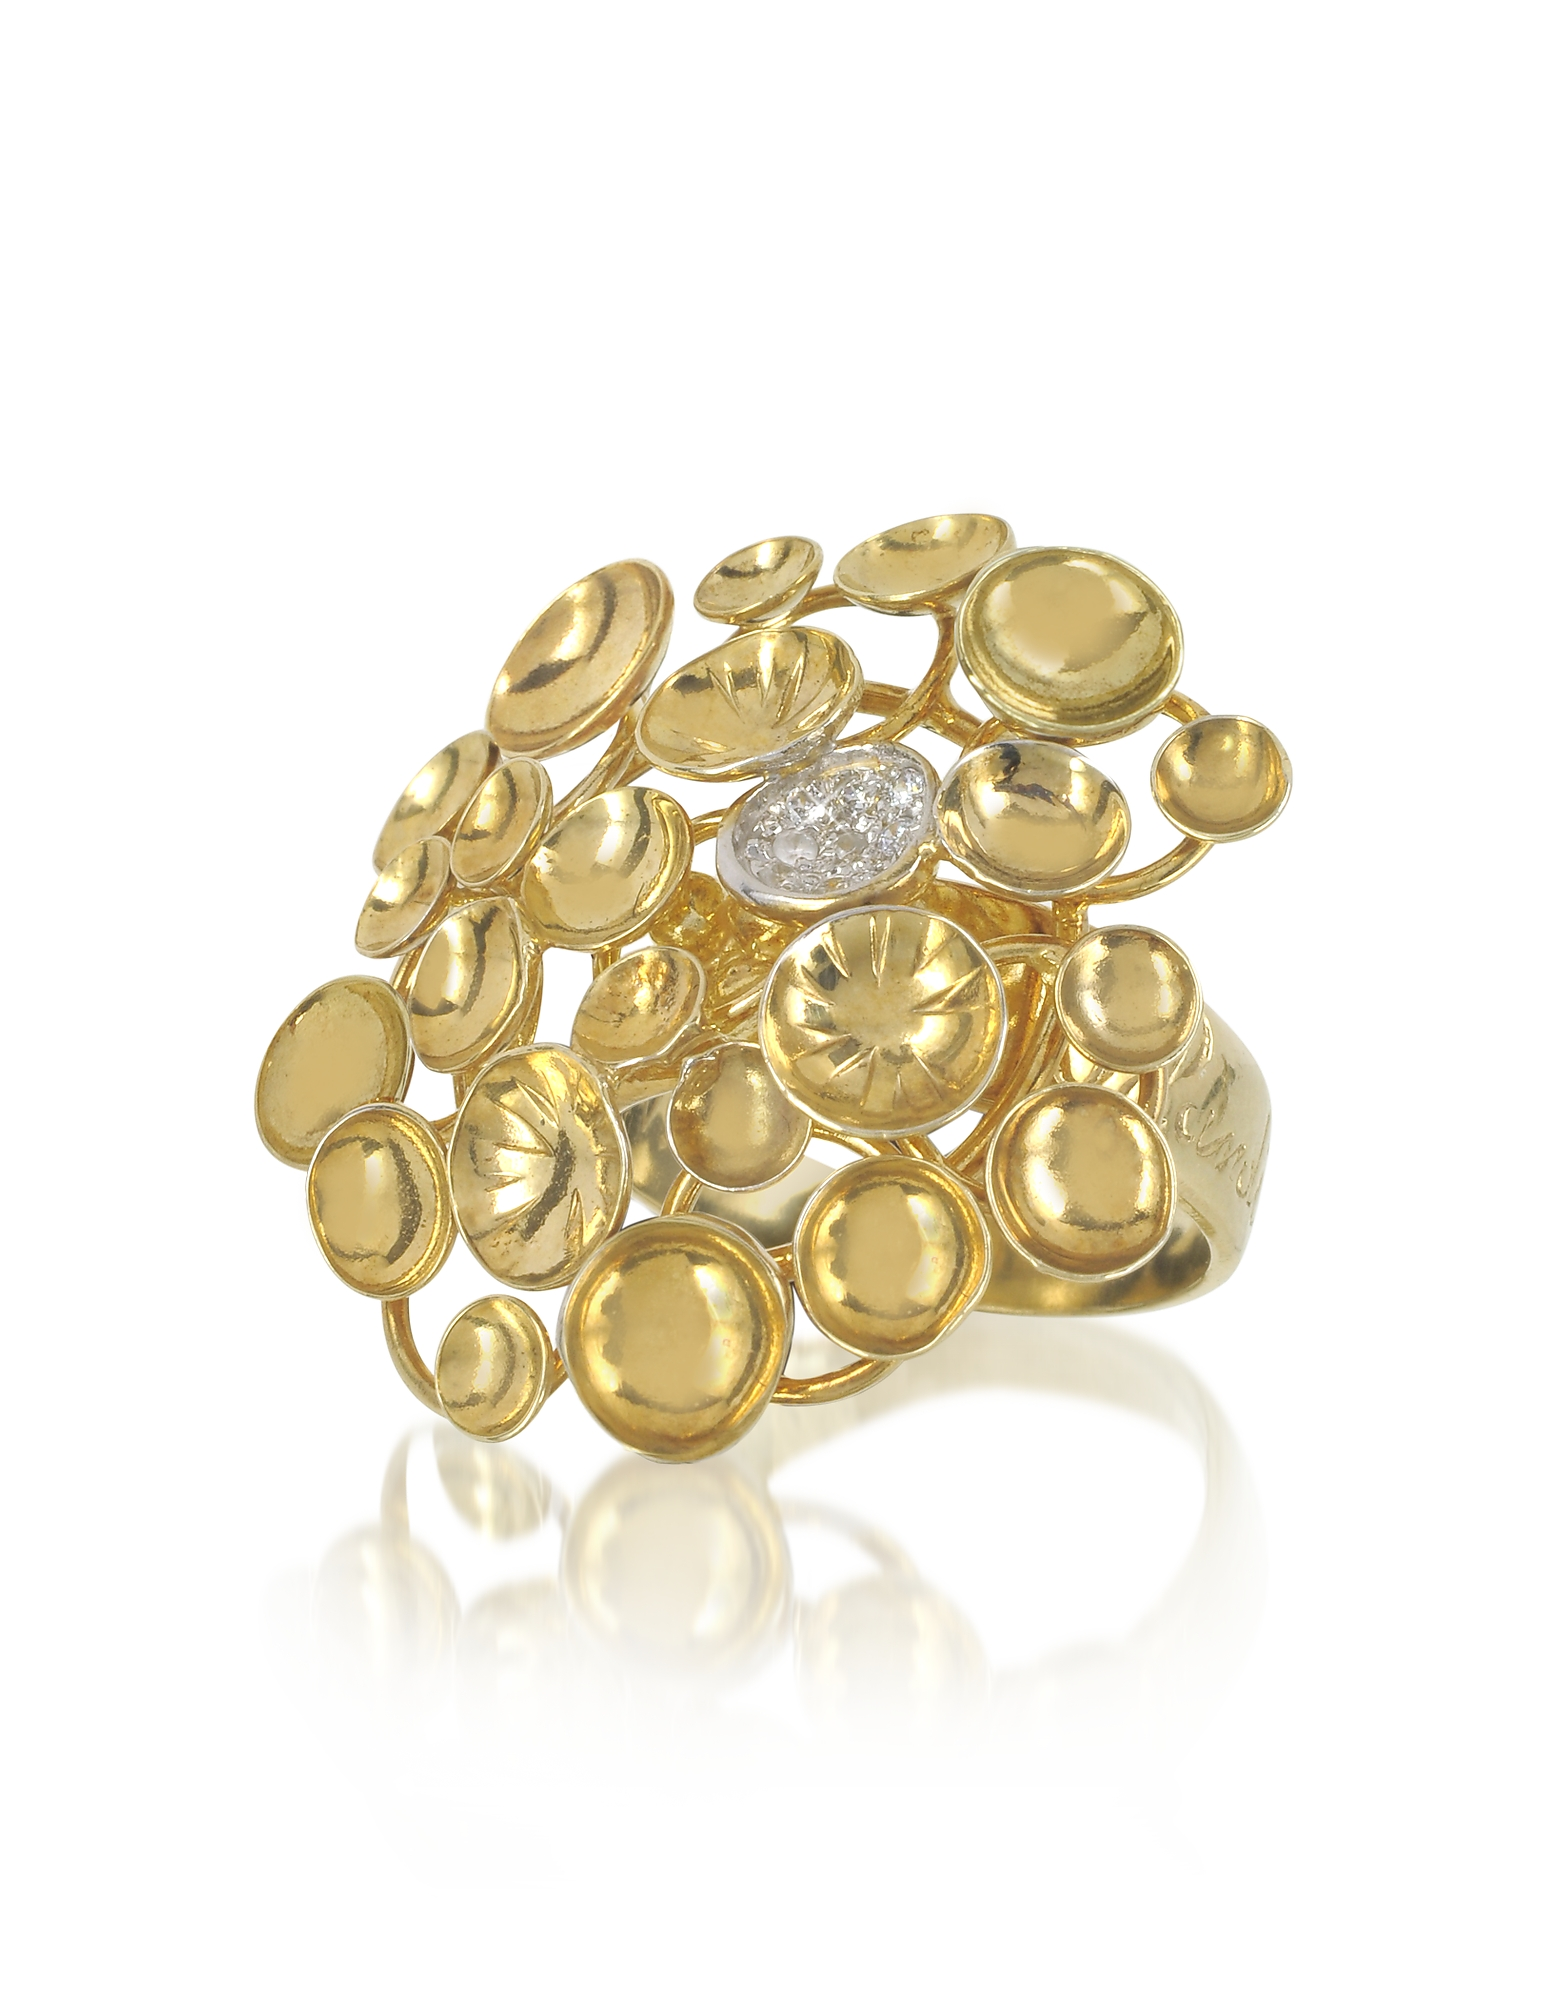 Orlando Orlandini Rings, 18K Yellow Gold Large Bouquet Ring w/Diamond